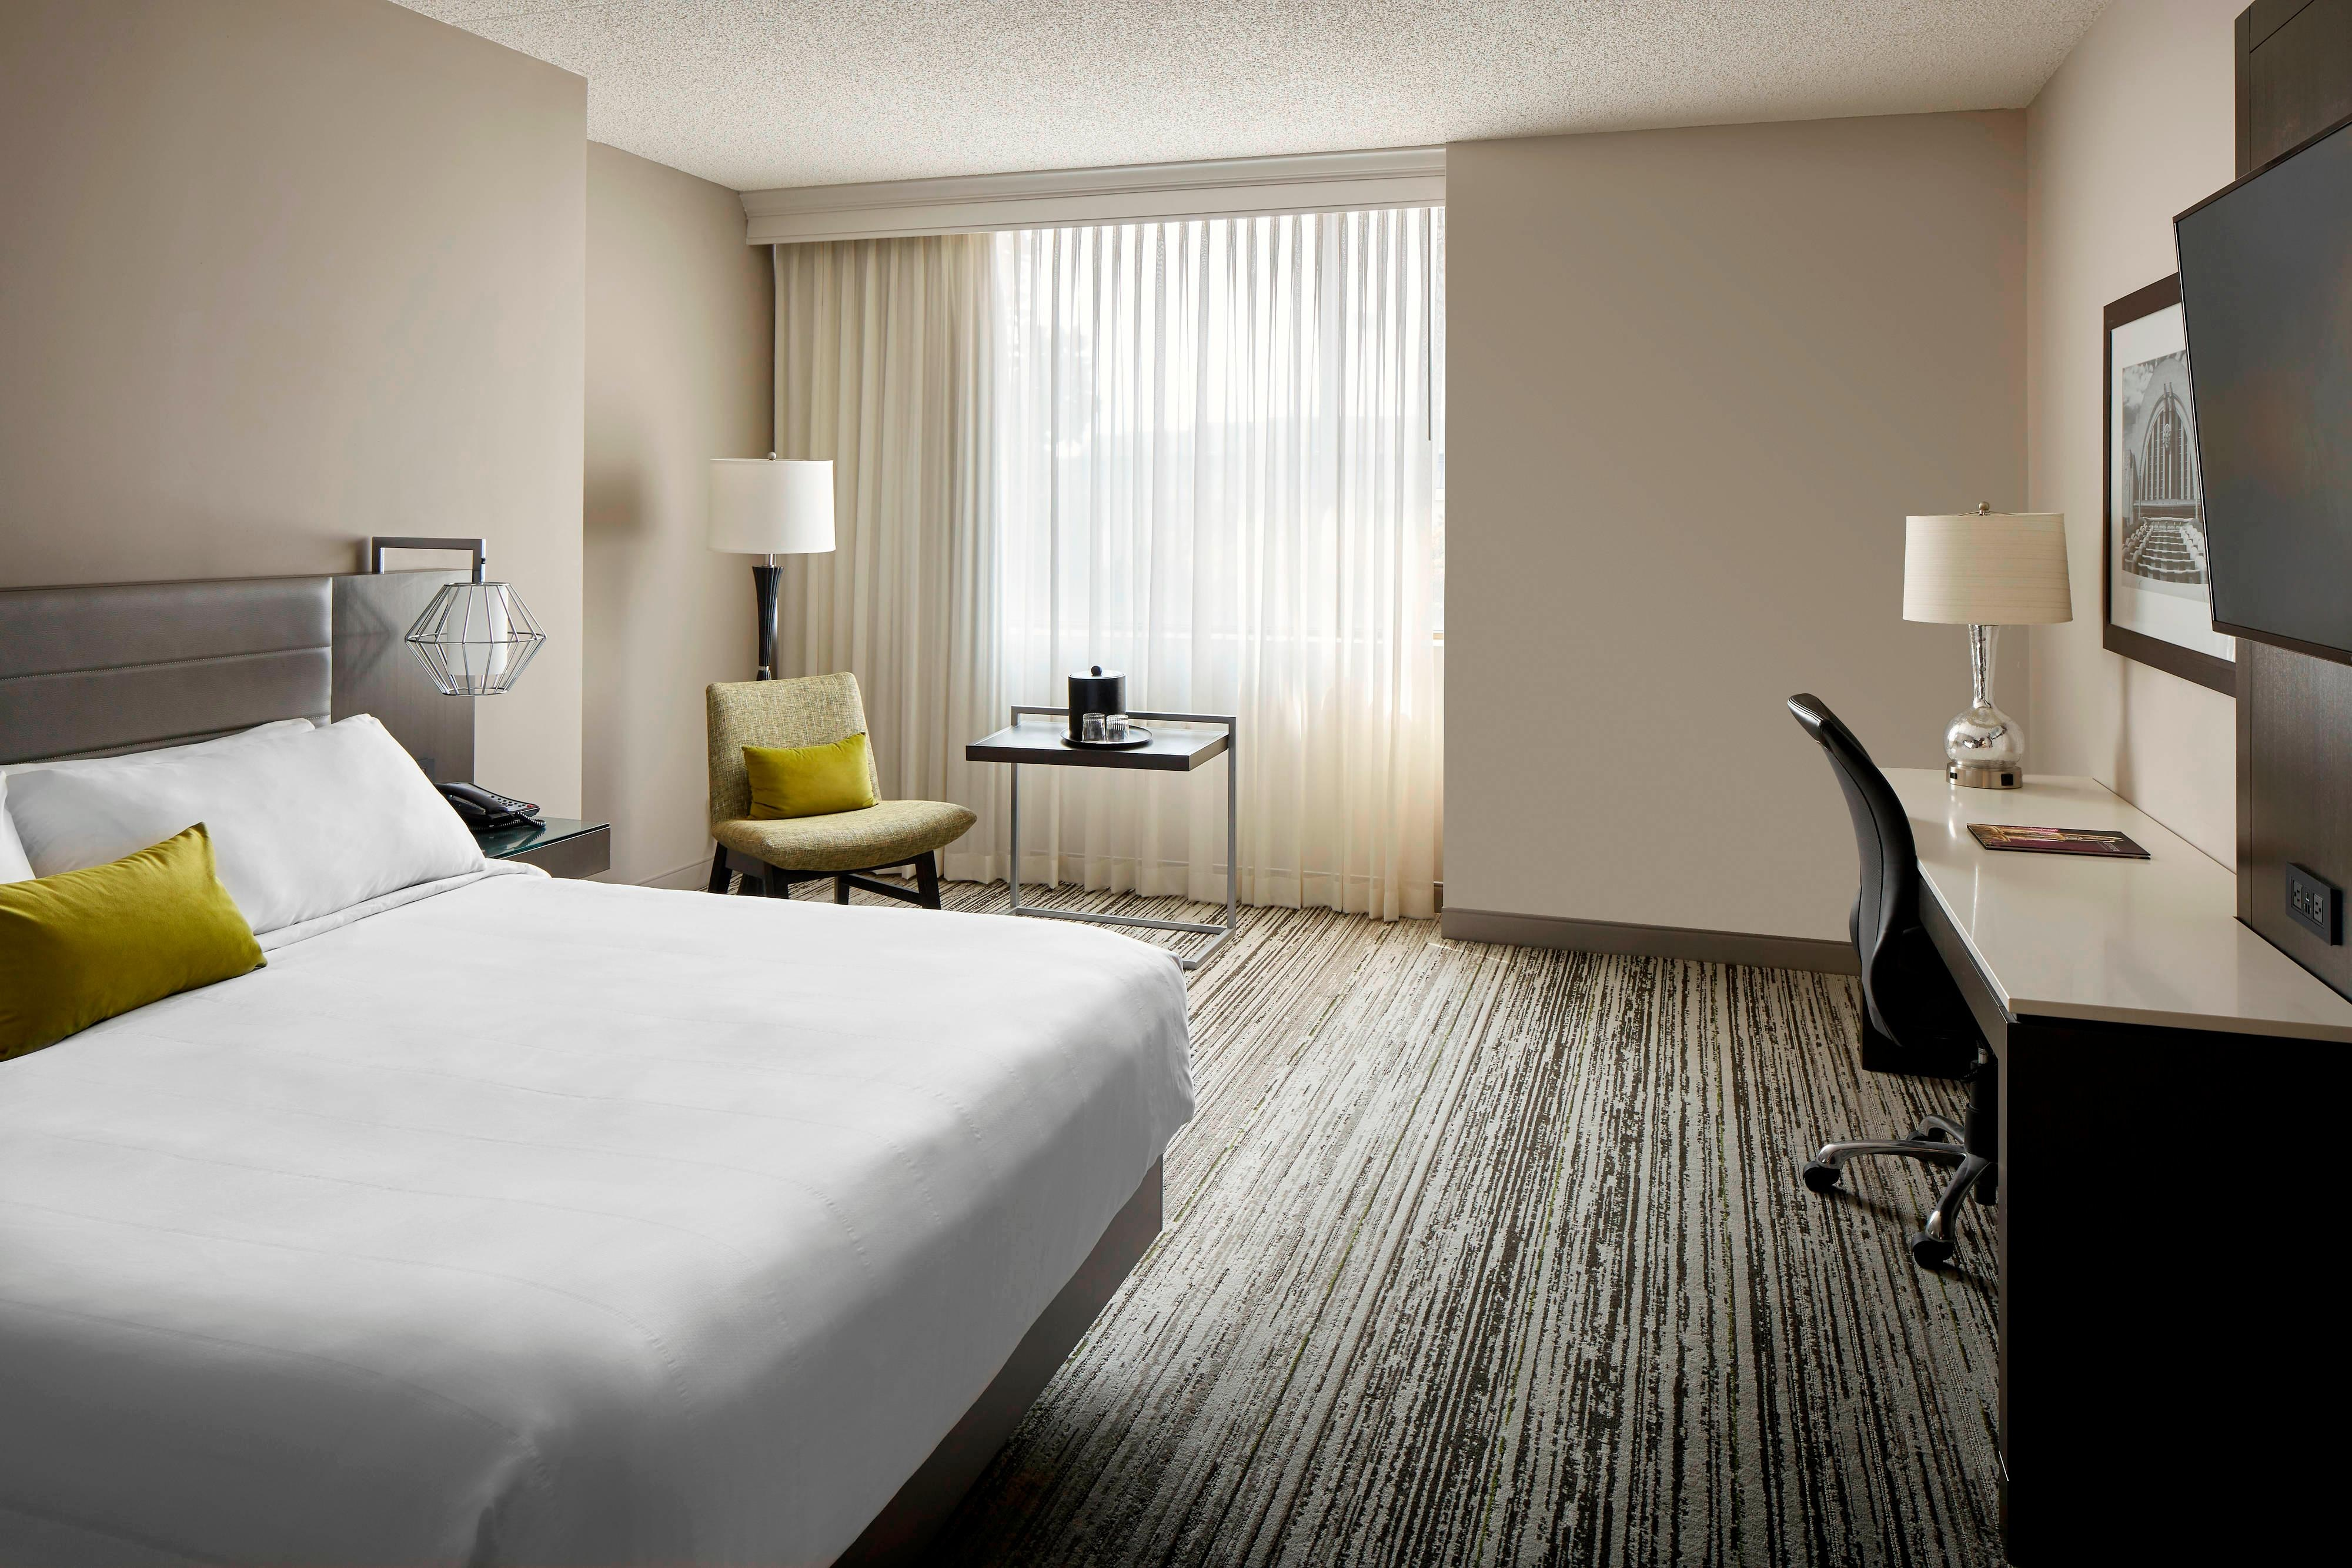 Hotels Cvg Airport Cincinnati